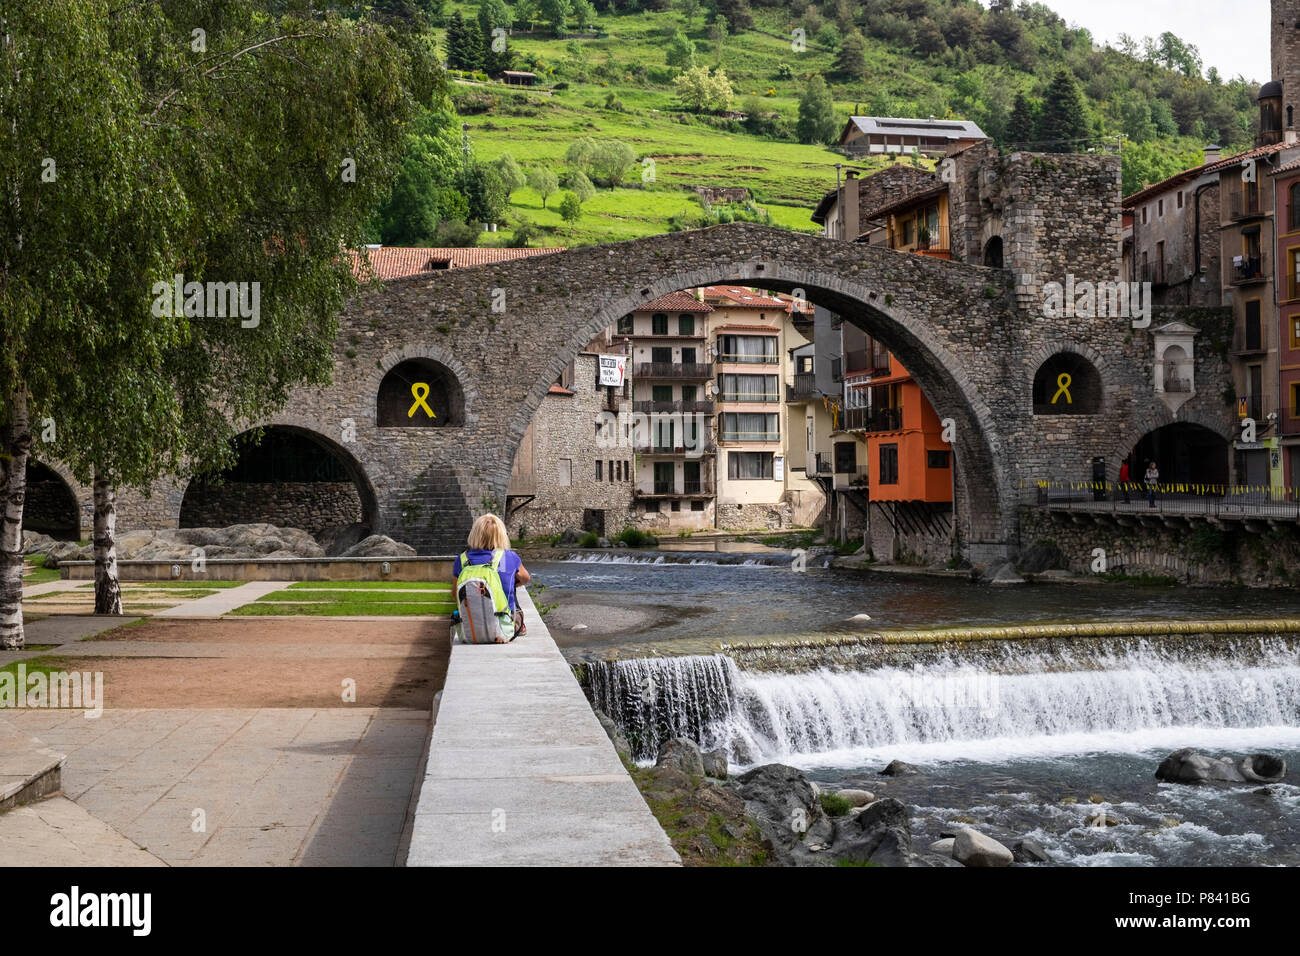 Woman tourist, walker, with backpack sitting by the Pont Neu, the 12th century humpbacked bridge over the River Ter in Camprodon village in the Catalo - Stock Image